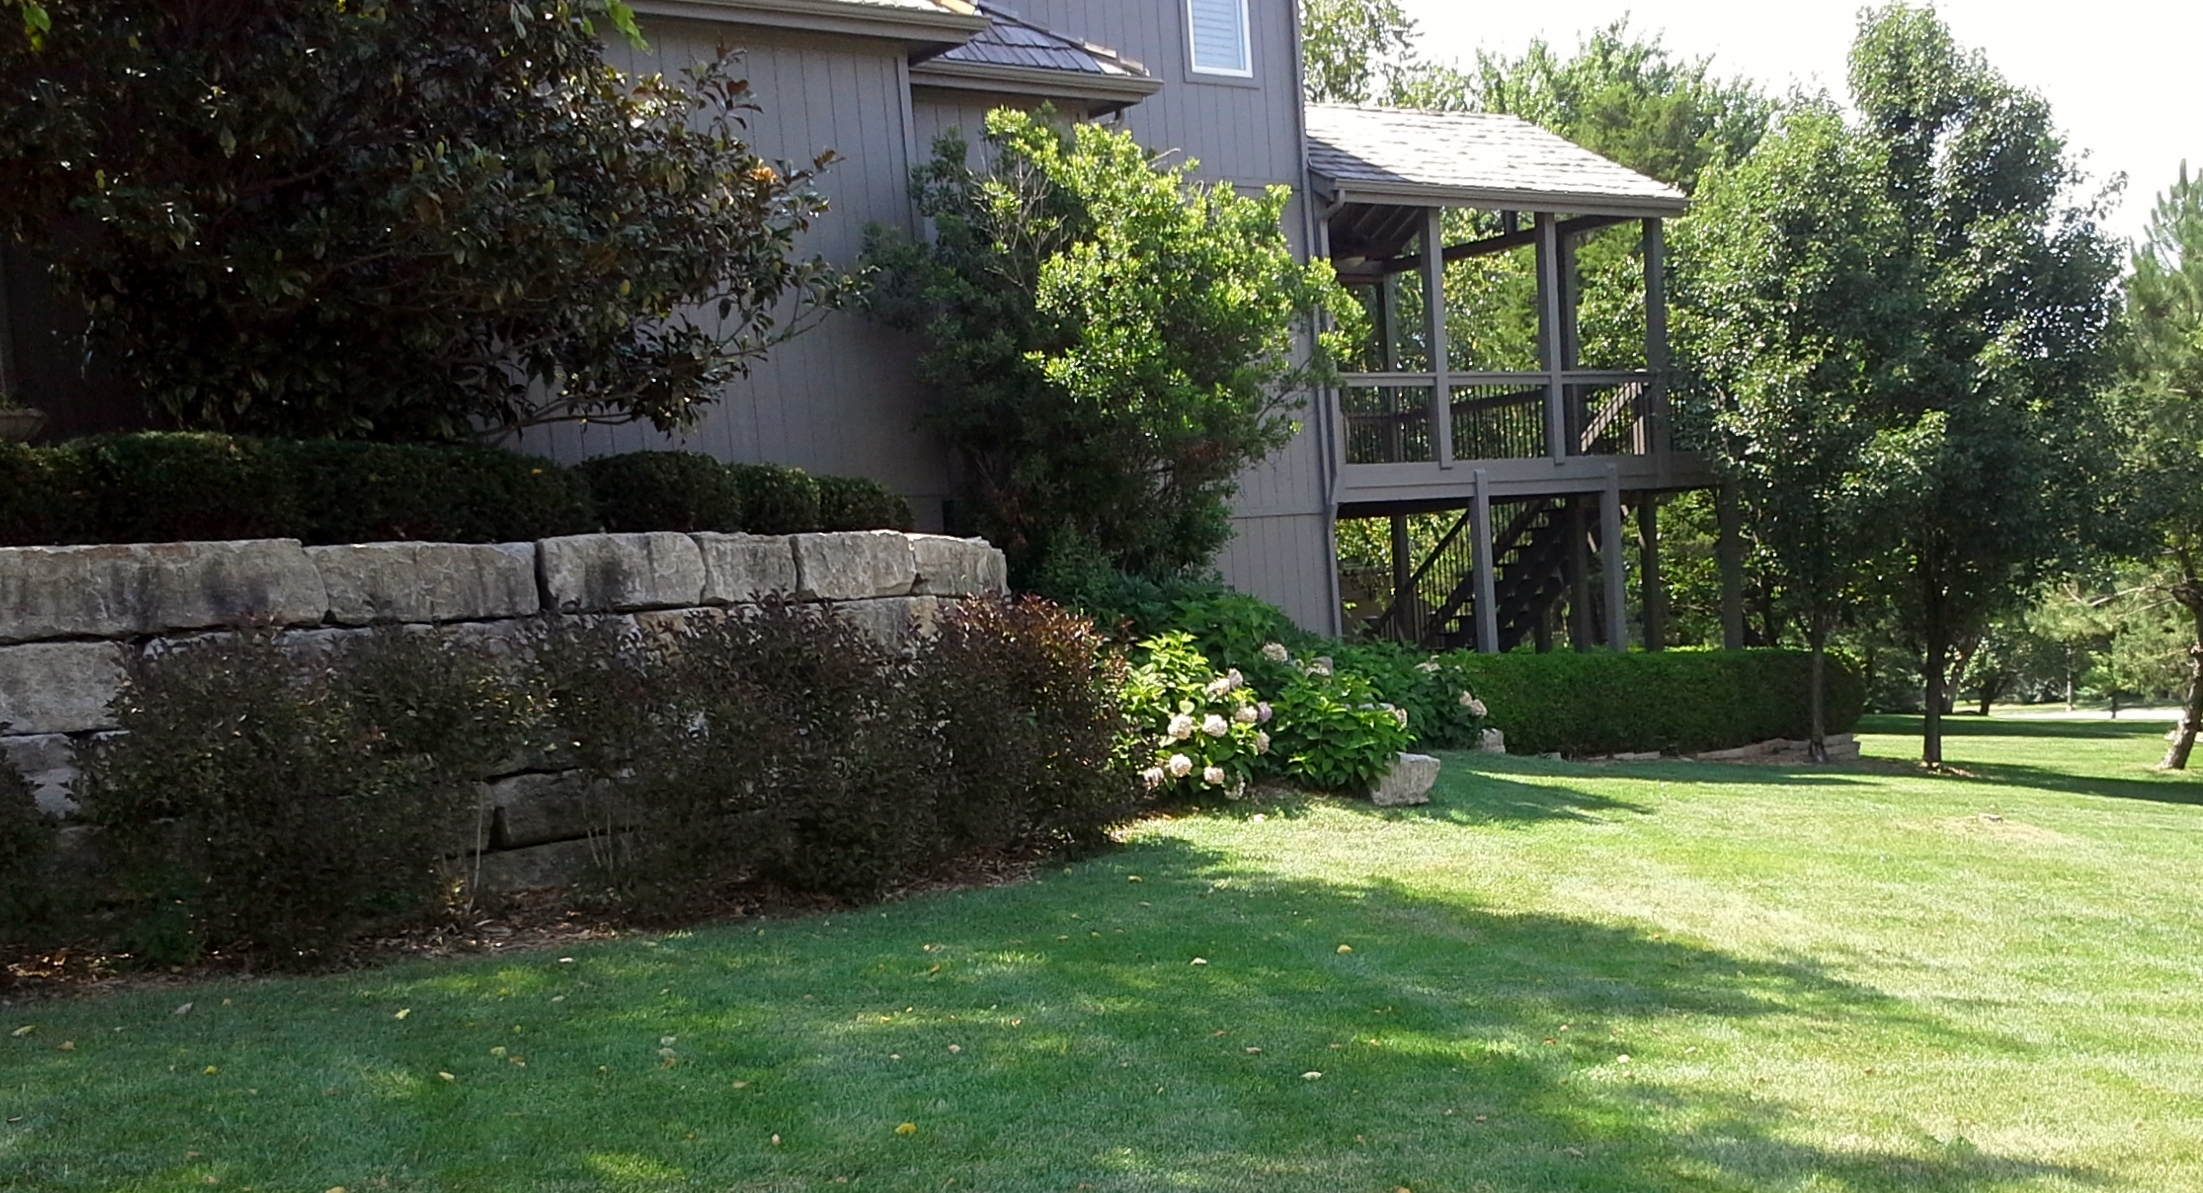 Landscaping Overland Park Ks : Spring landscaping in kansas city leawood sk lawn care